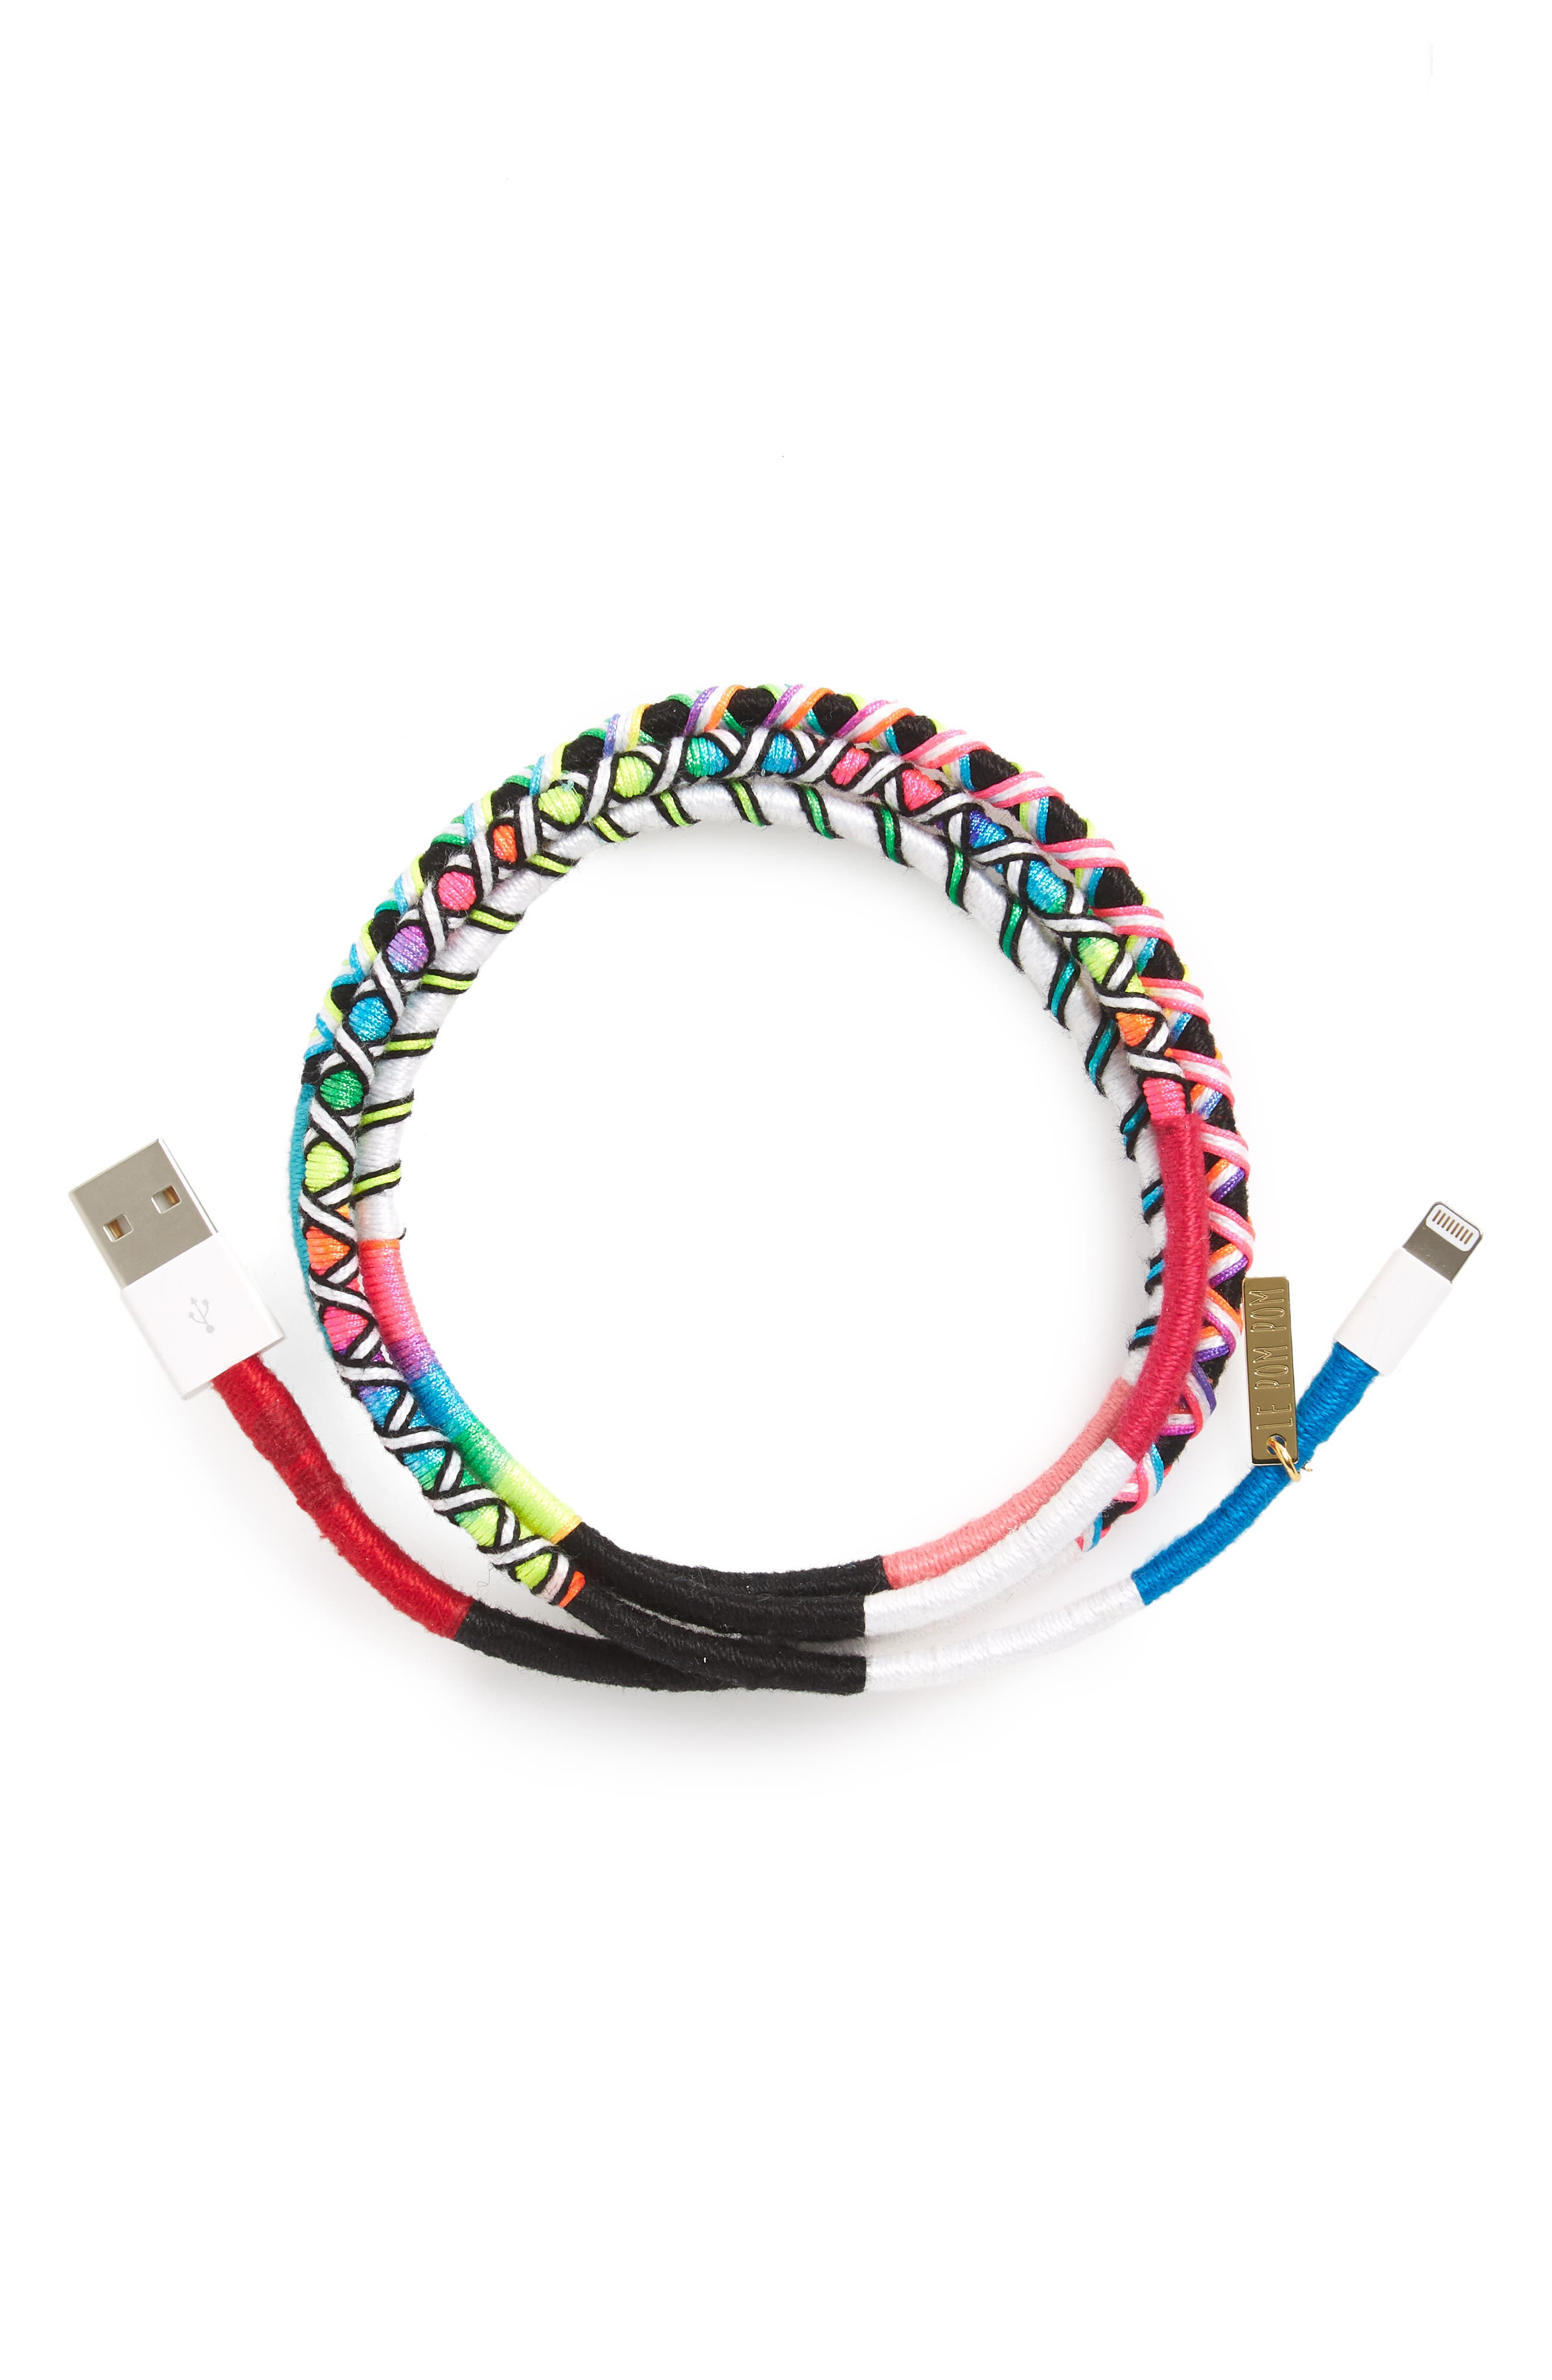 Polly Hand-Wrapped iPhone Charging Cord,                         Main,                         color, Rainbow